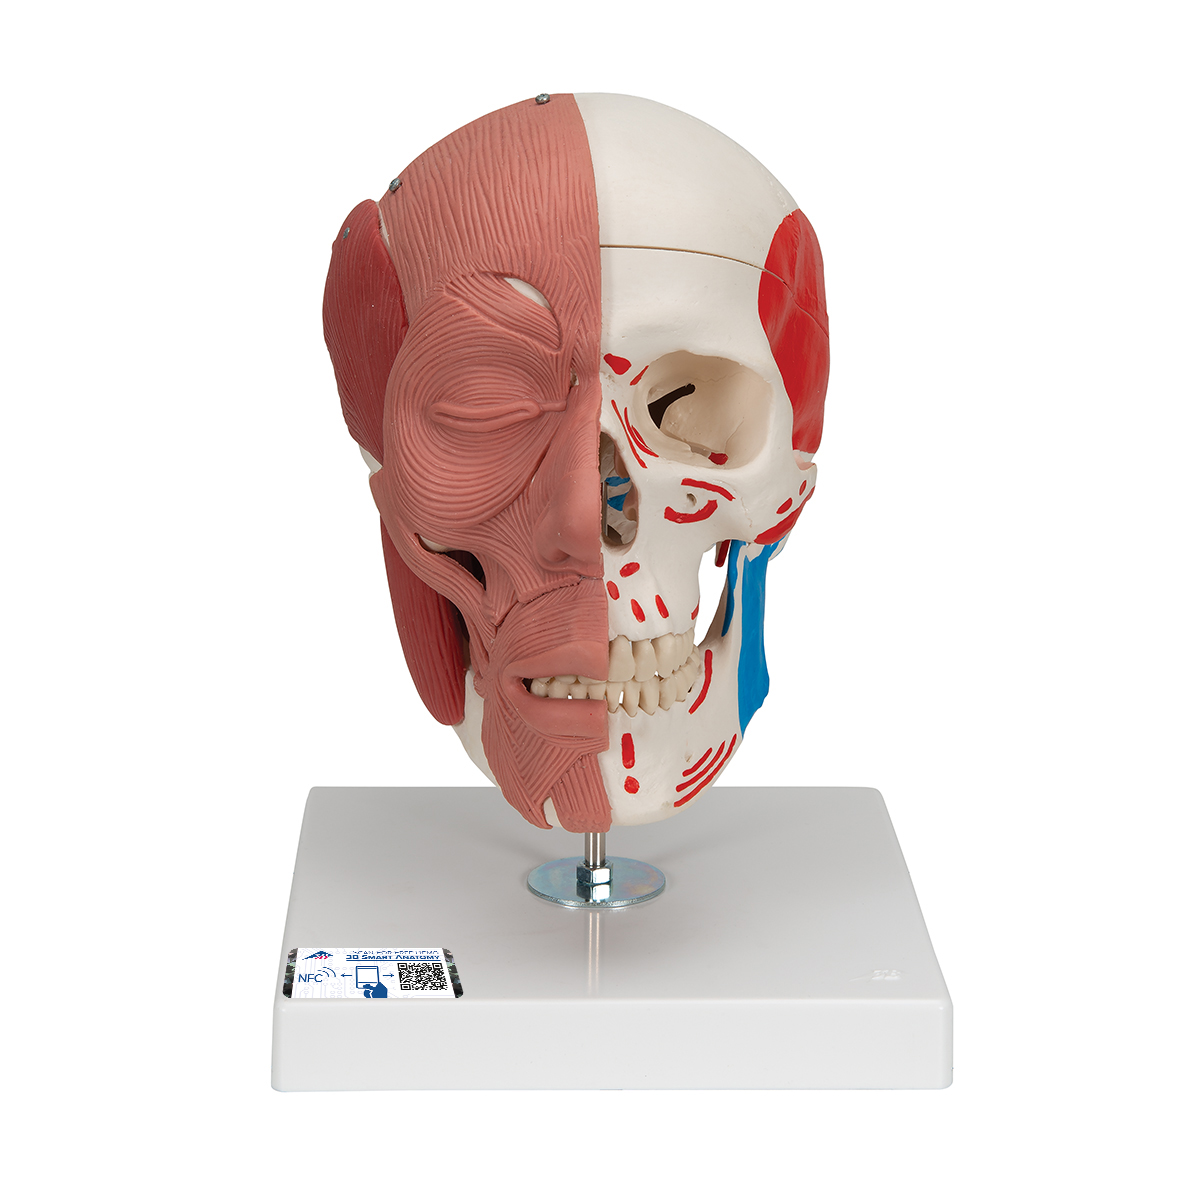 Skull with Facial Muscles - 1020181 - 3B Scientific - A300 ...